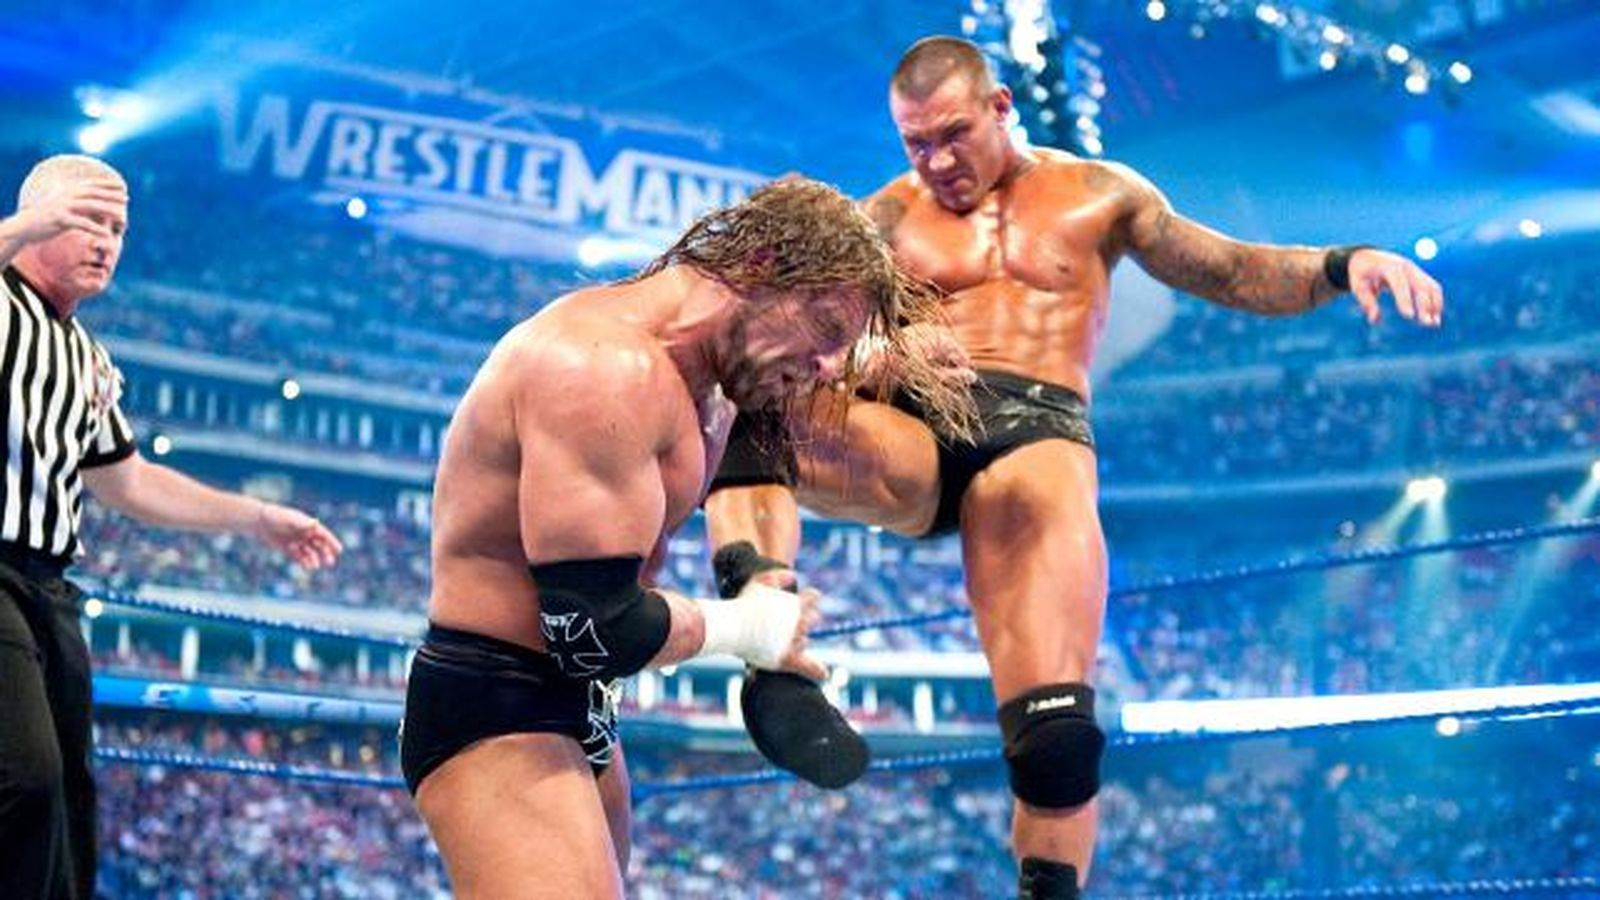 The 10 Worst WrestleMania Main Events in History